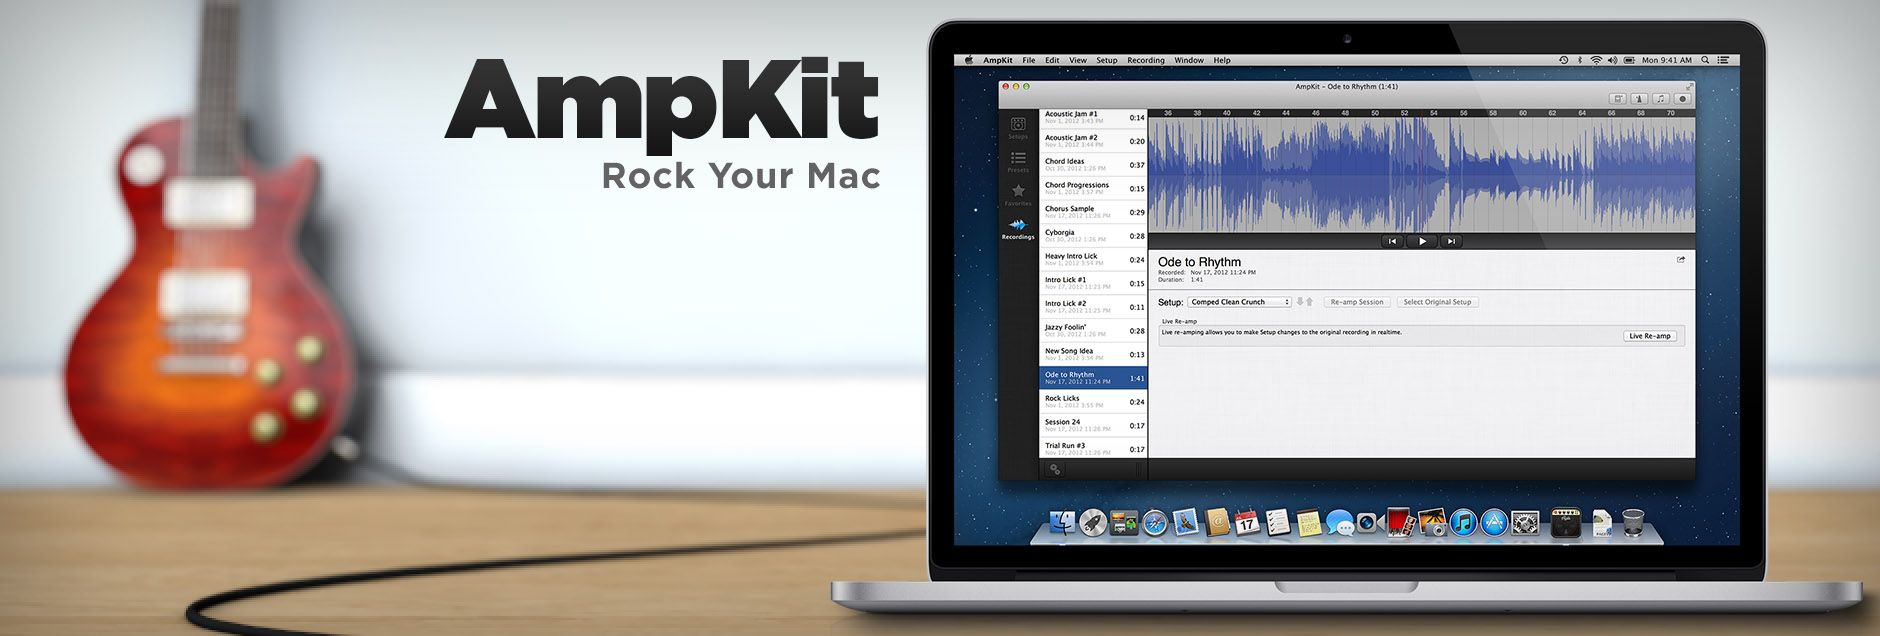 AmpKit Mac feature image